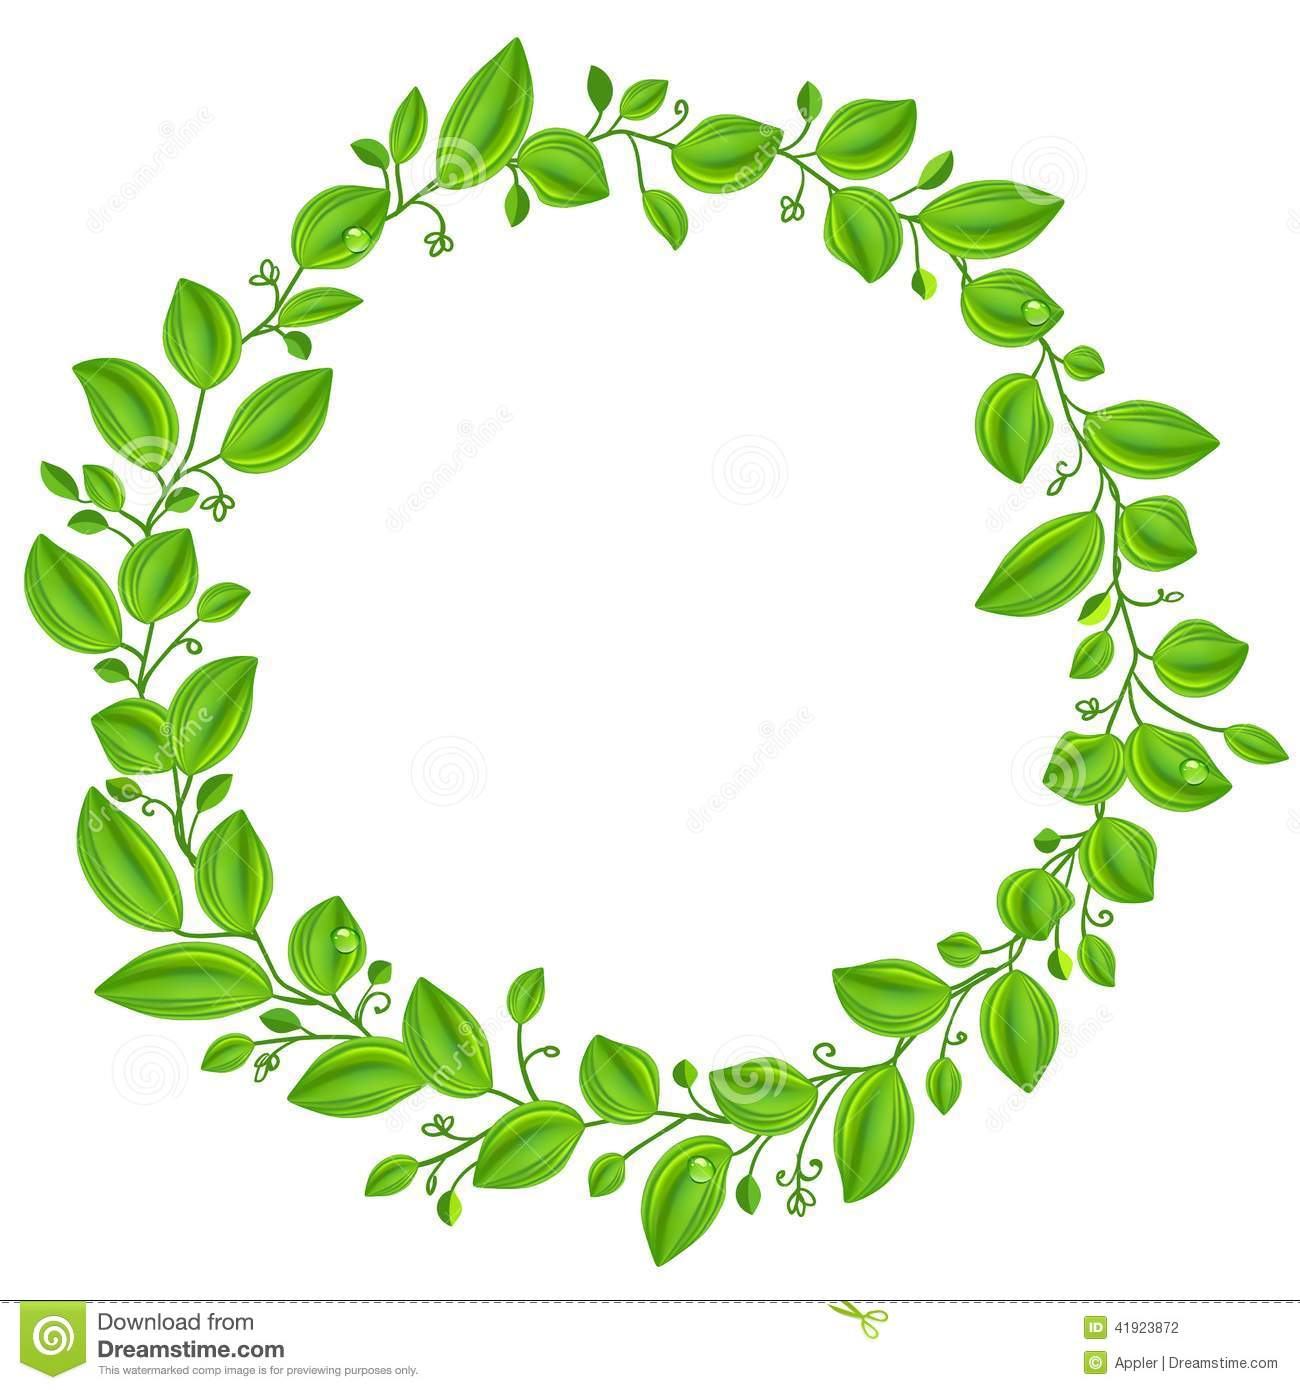 Borders circle leaves clipart clipart free stock Leaves Border | Free download best Leaves Border on ClipArtMag.com clipart free stock